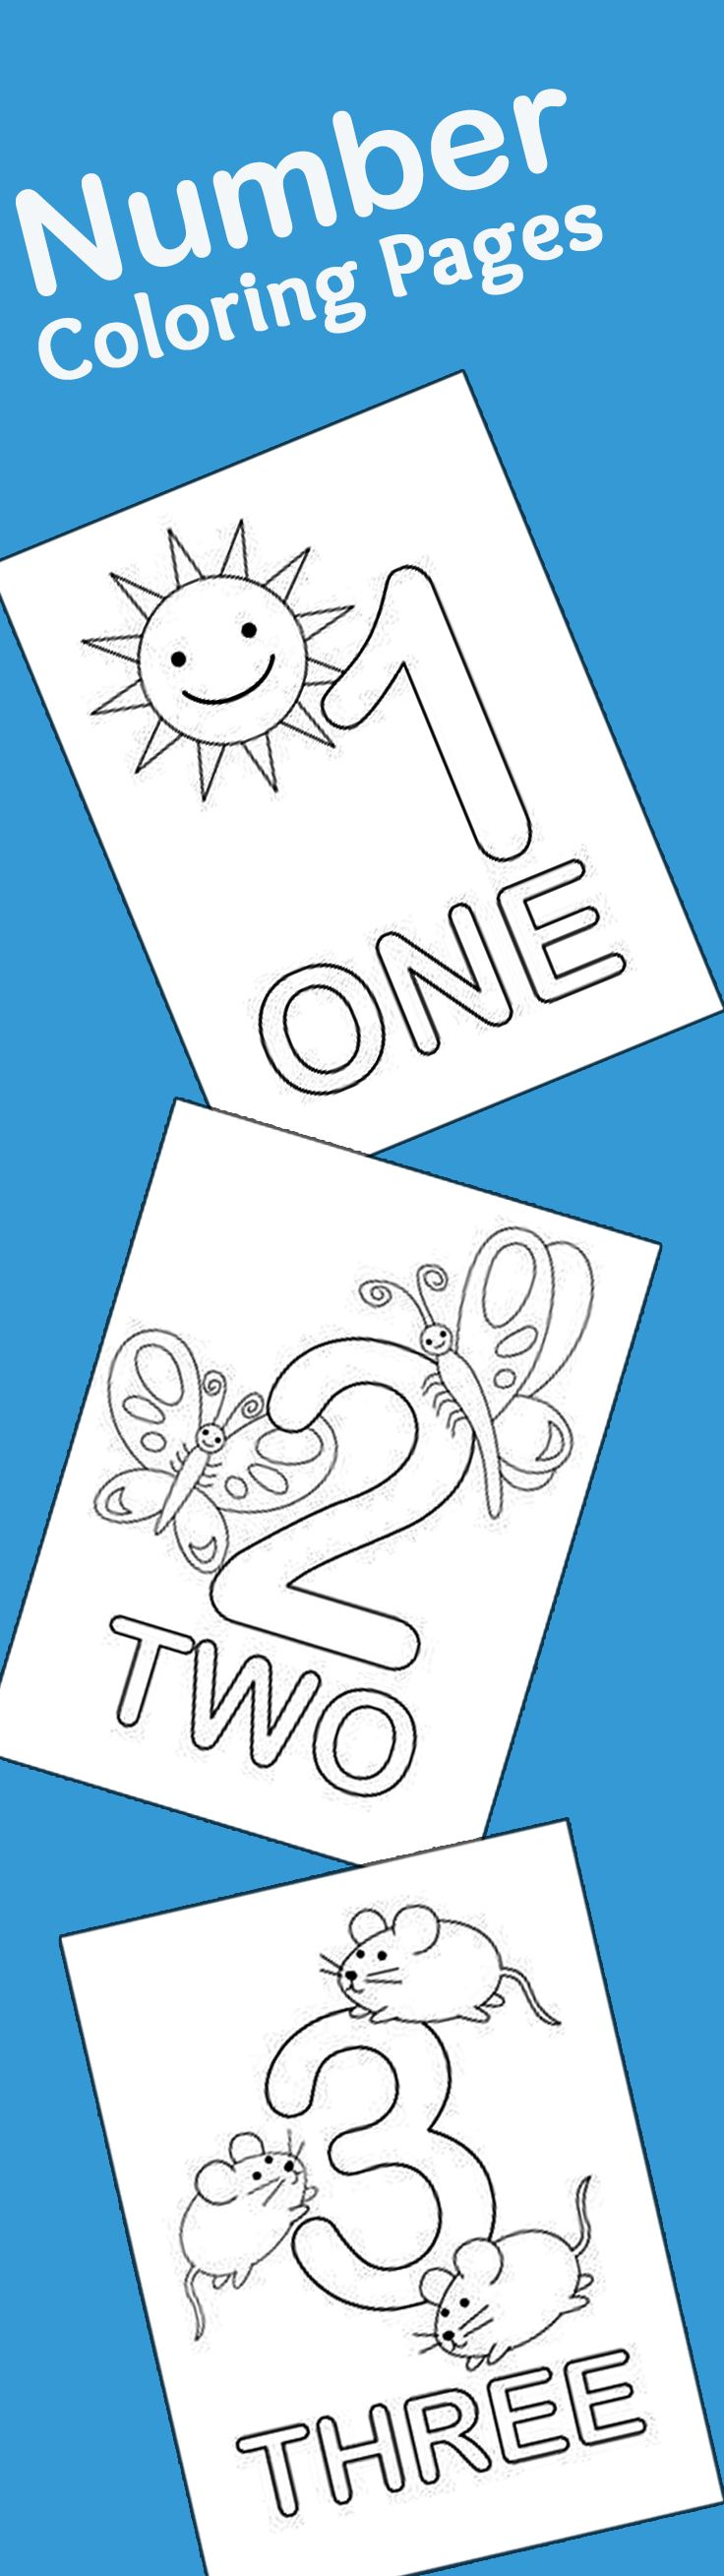 Preschool coloring games online free - Top 21 Free Printable Number Coloring Pages Online